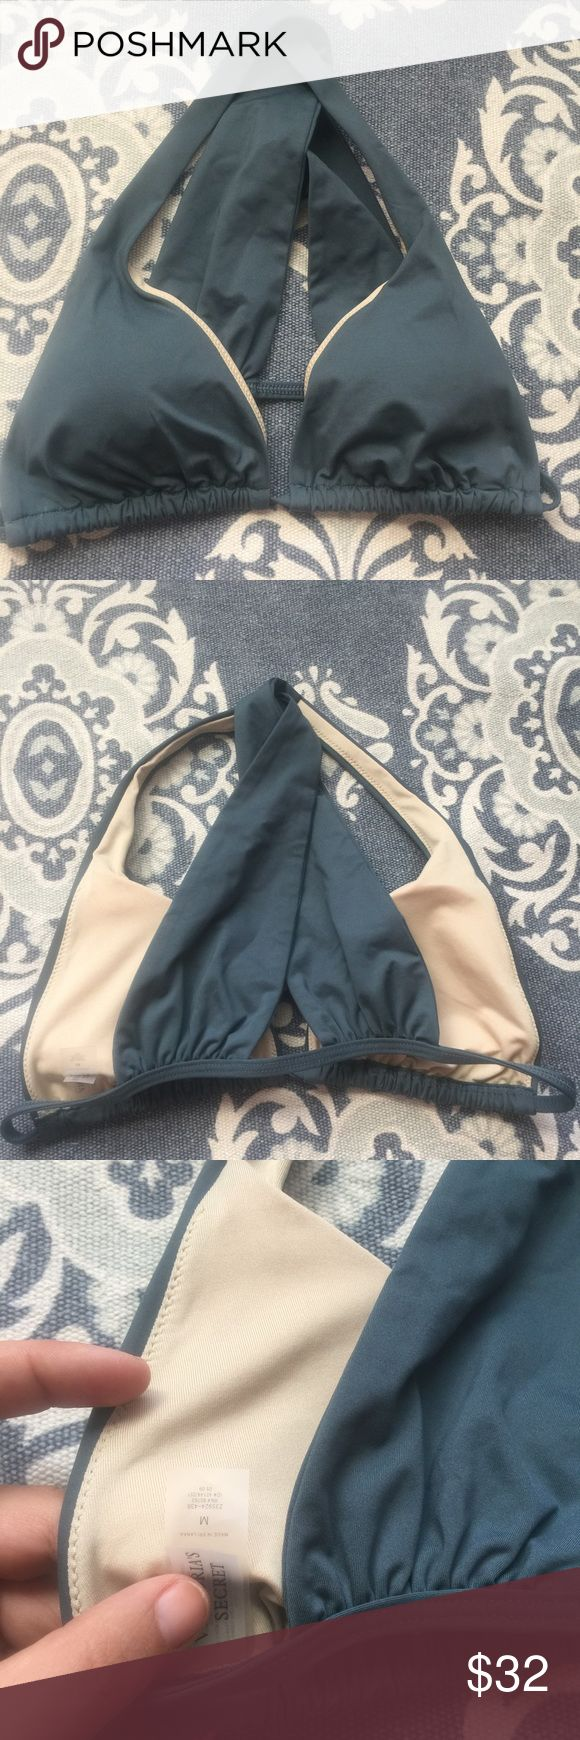 NWOT VS bathing suit top Cross crossed back. Never been worn. Questions and reasonable offers through the offer button are welcomed! Victoria's Secret Swim